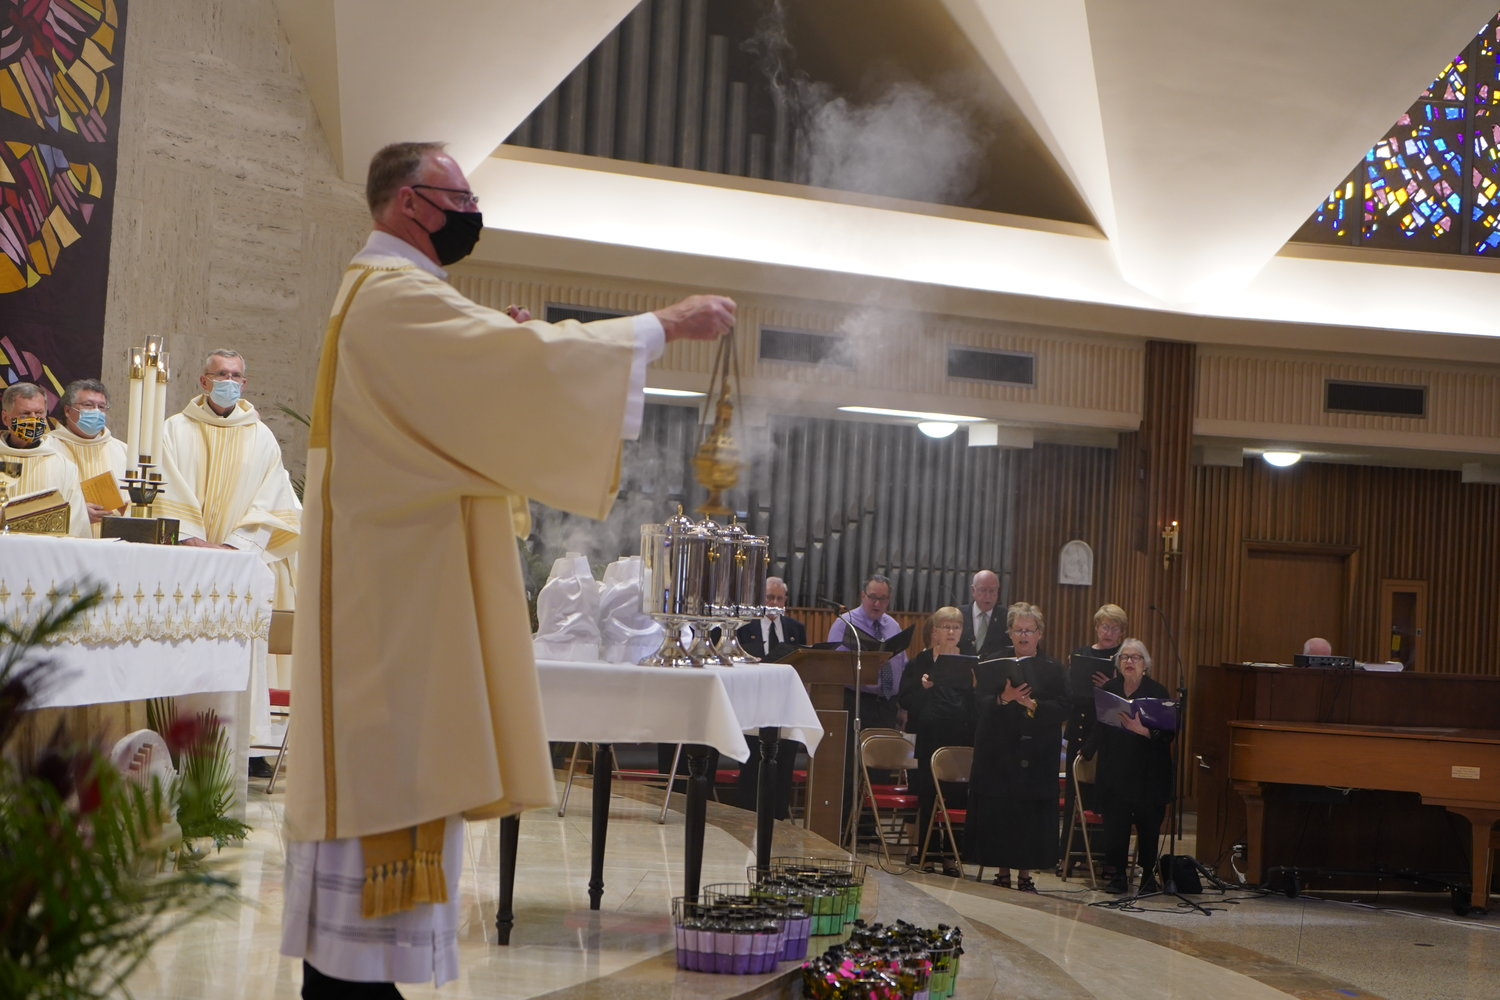 Deacon John Schwartze incenses the congregation during the Chrism Mass on March 30, 2021, in the Cathedral of St. Joseph in Jefferson City.